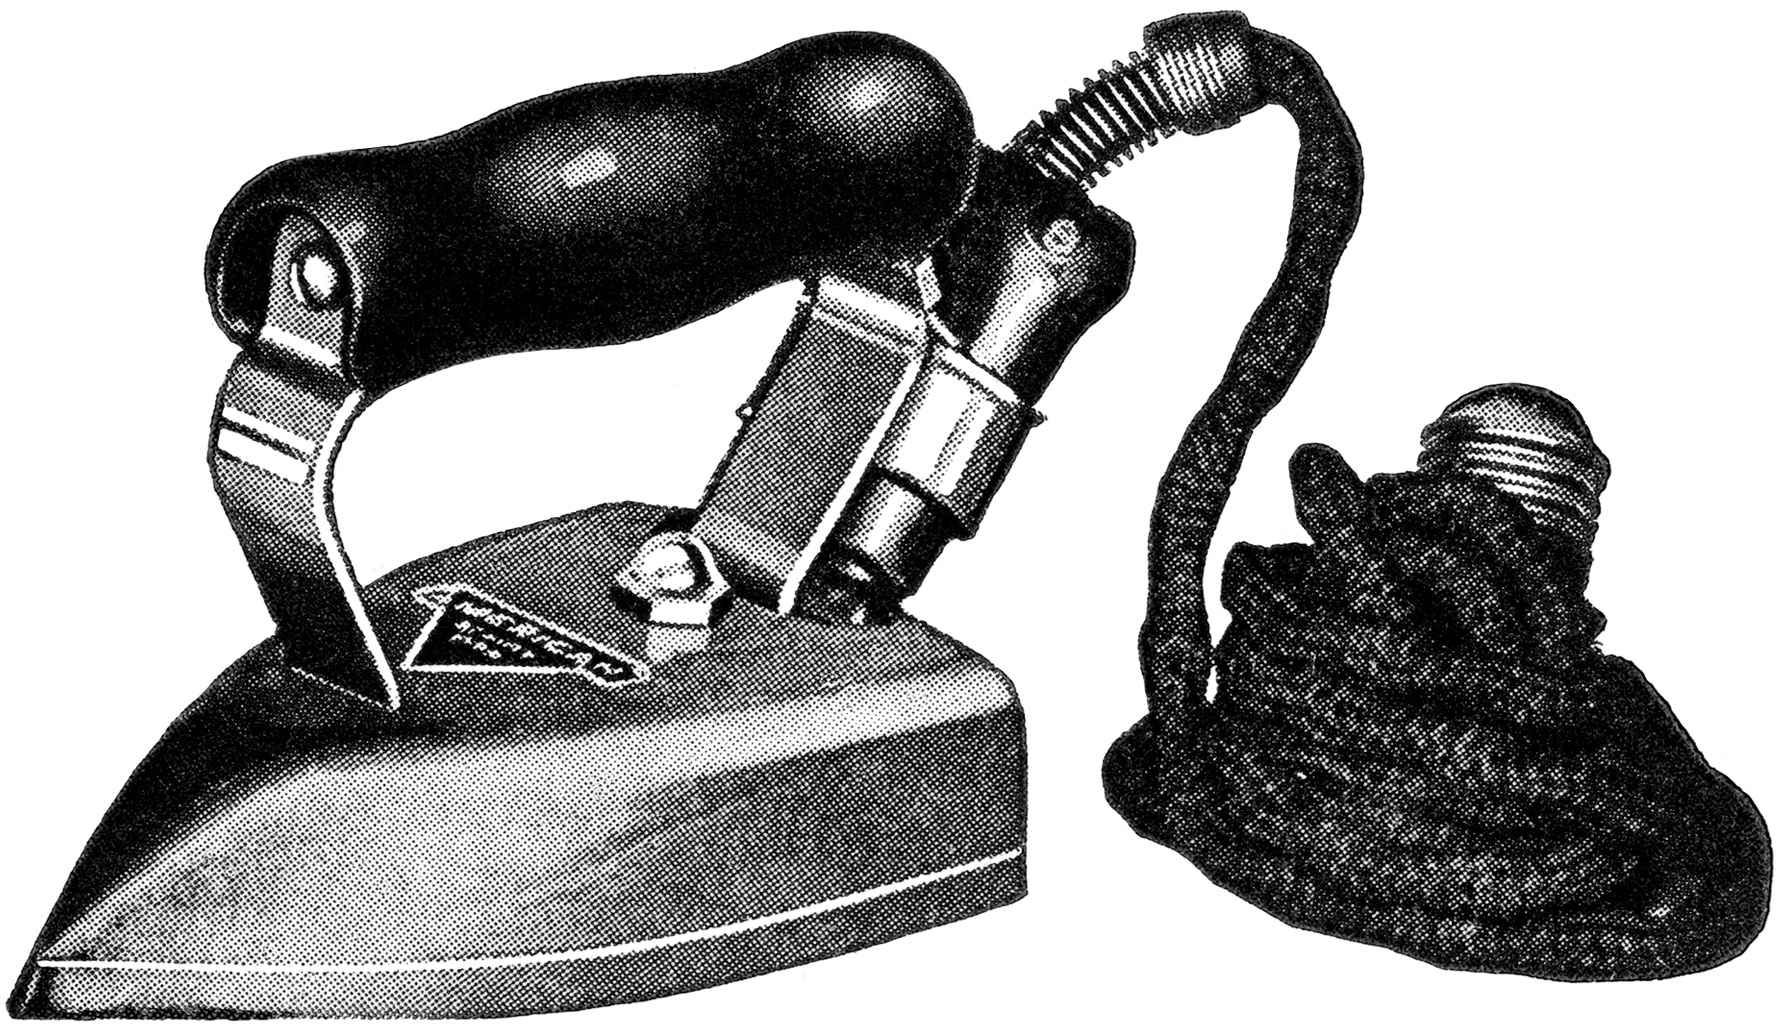 Iron Clip Art American Beauty Iron Antique Sewing Graphics Old